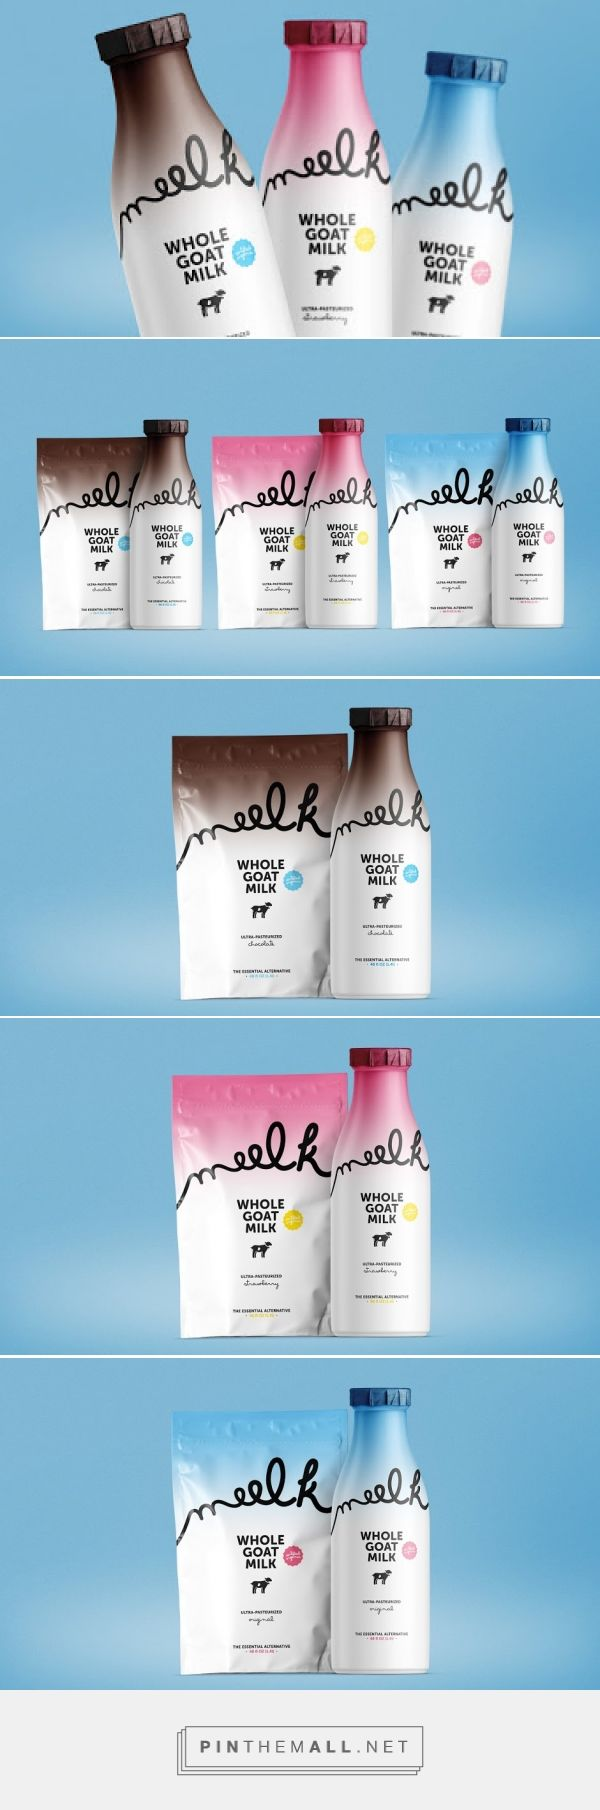 Like the gradient background - Meelk - Whole Goat Milk (Concept) on Packaging of the World - Creative Package Design Gallery - created via https://pinthemall.net